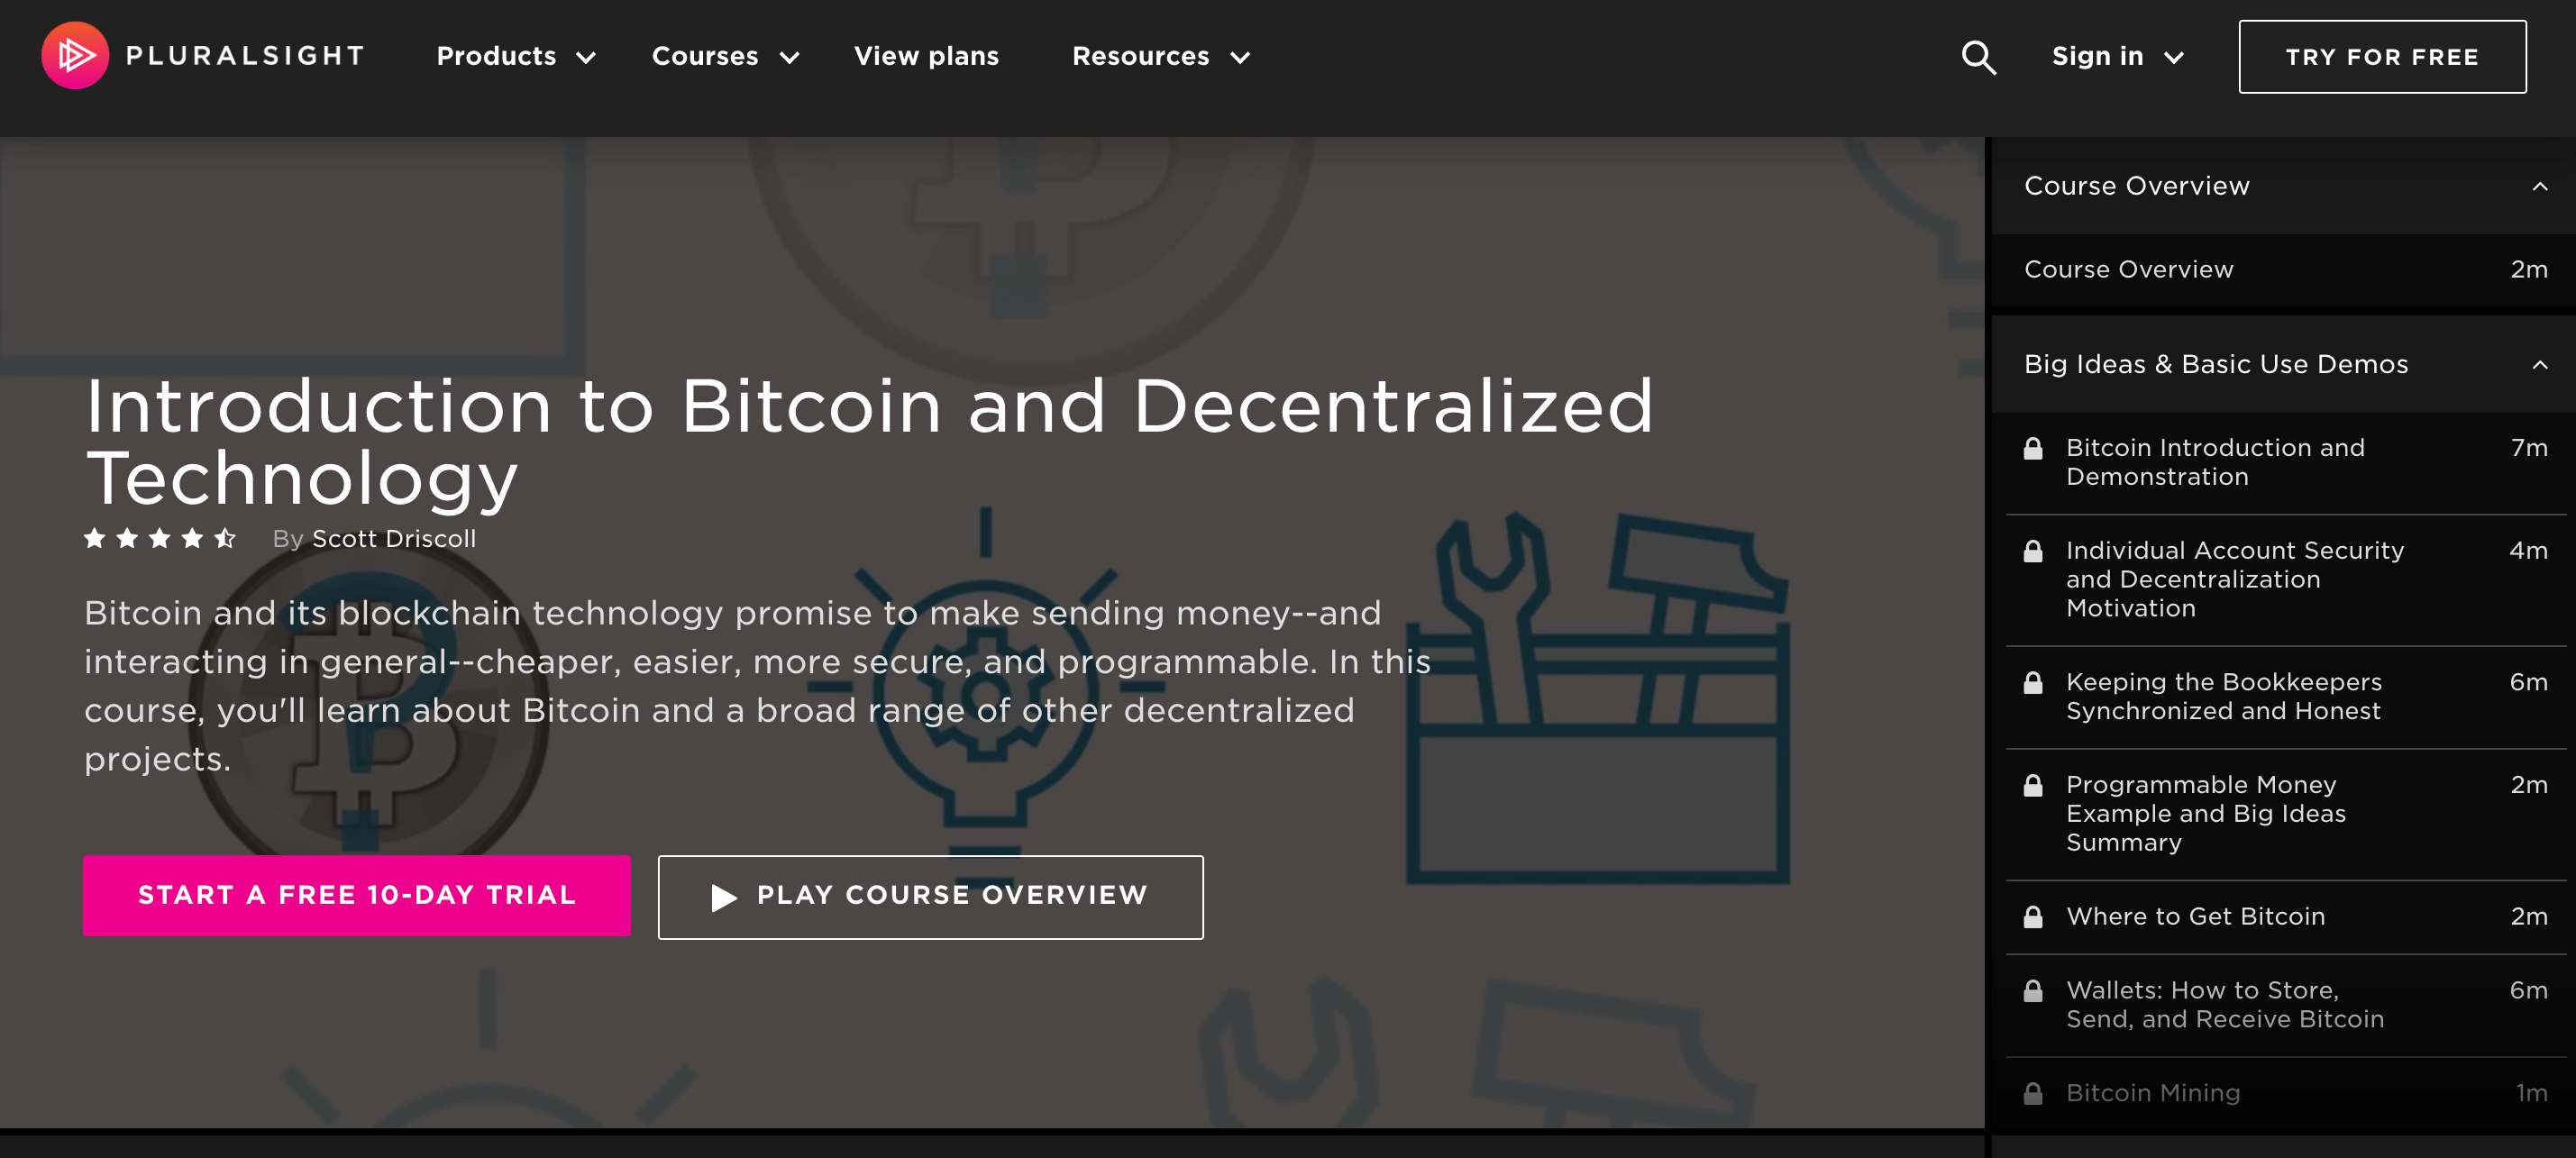 Introduction-to-Bitcoin-and-Decentralized-Technology-Pluralsight